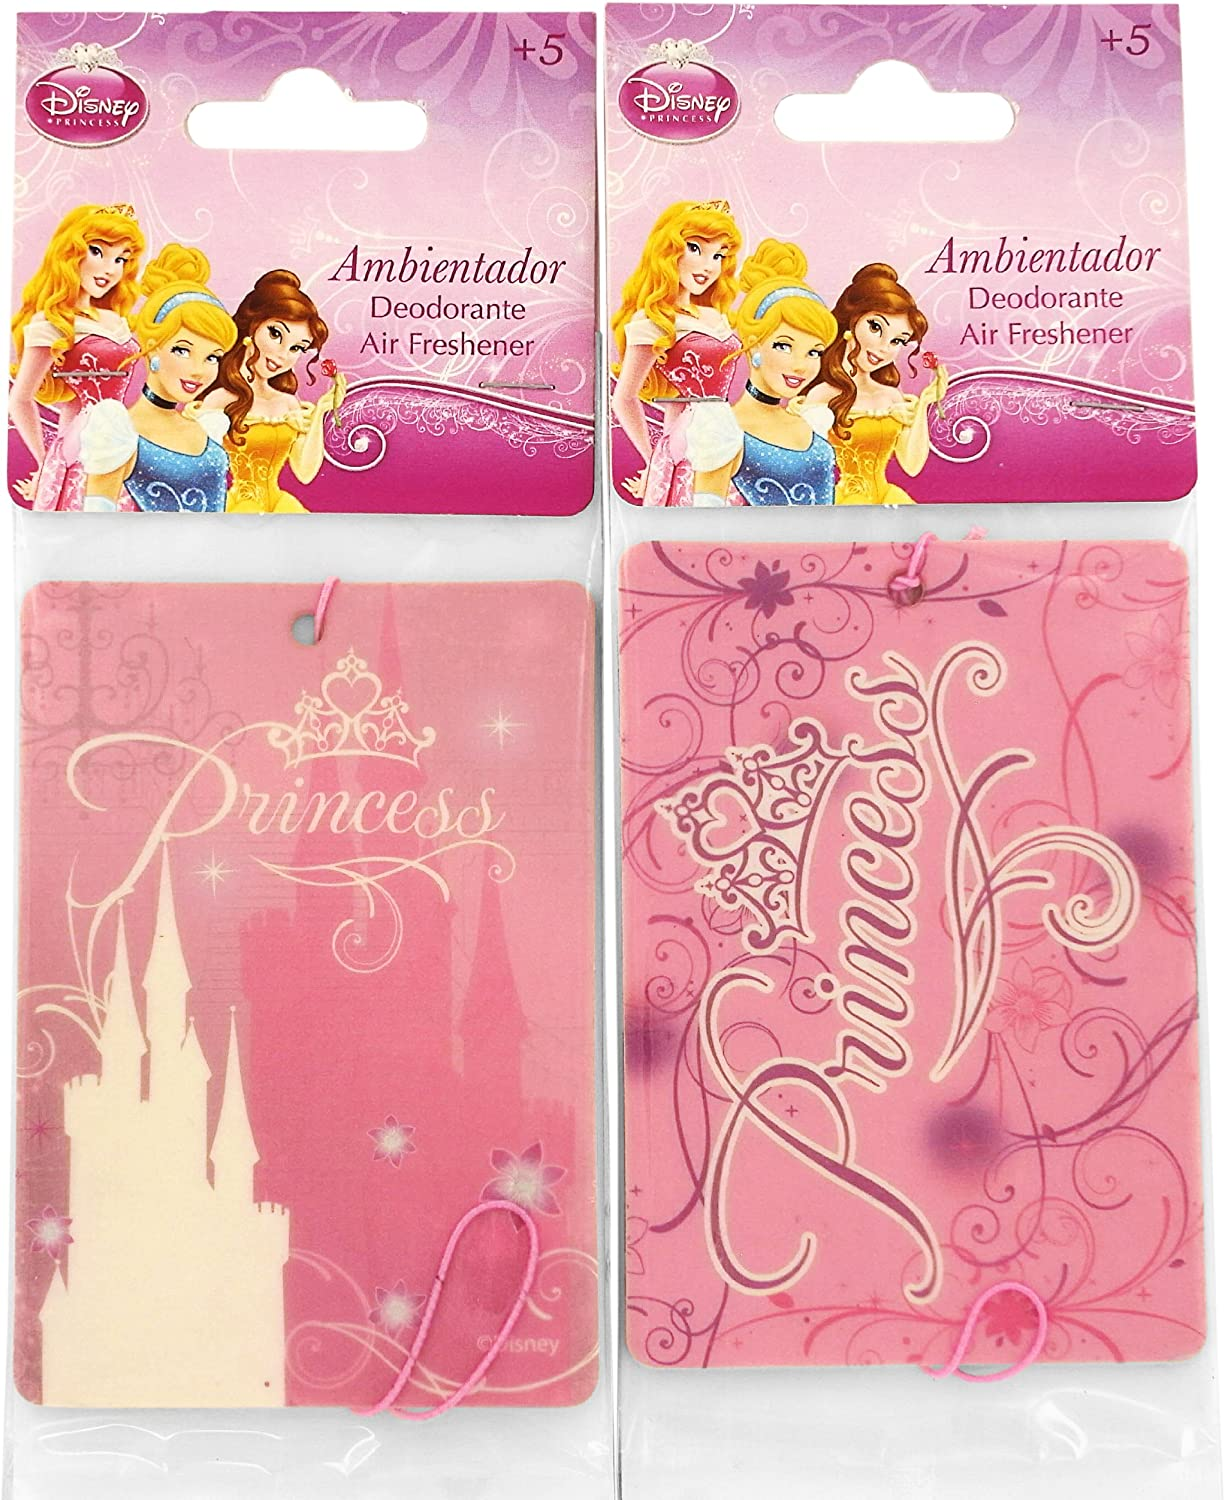 Princesas Disney - Pack de 2 Desodorantes Coche Princesa: Amazon ...